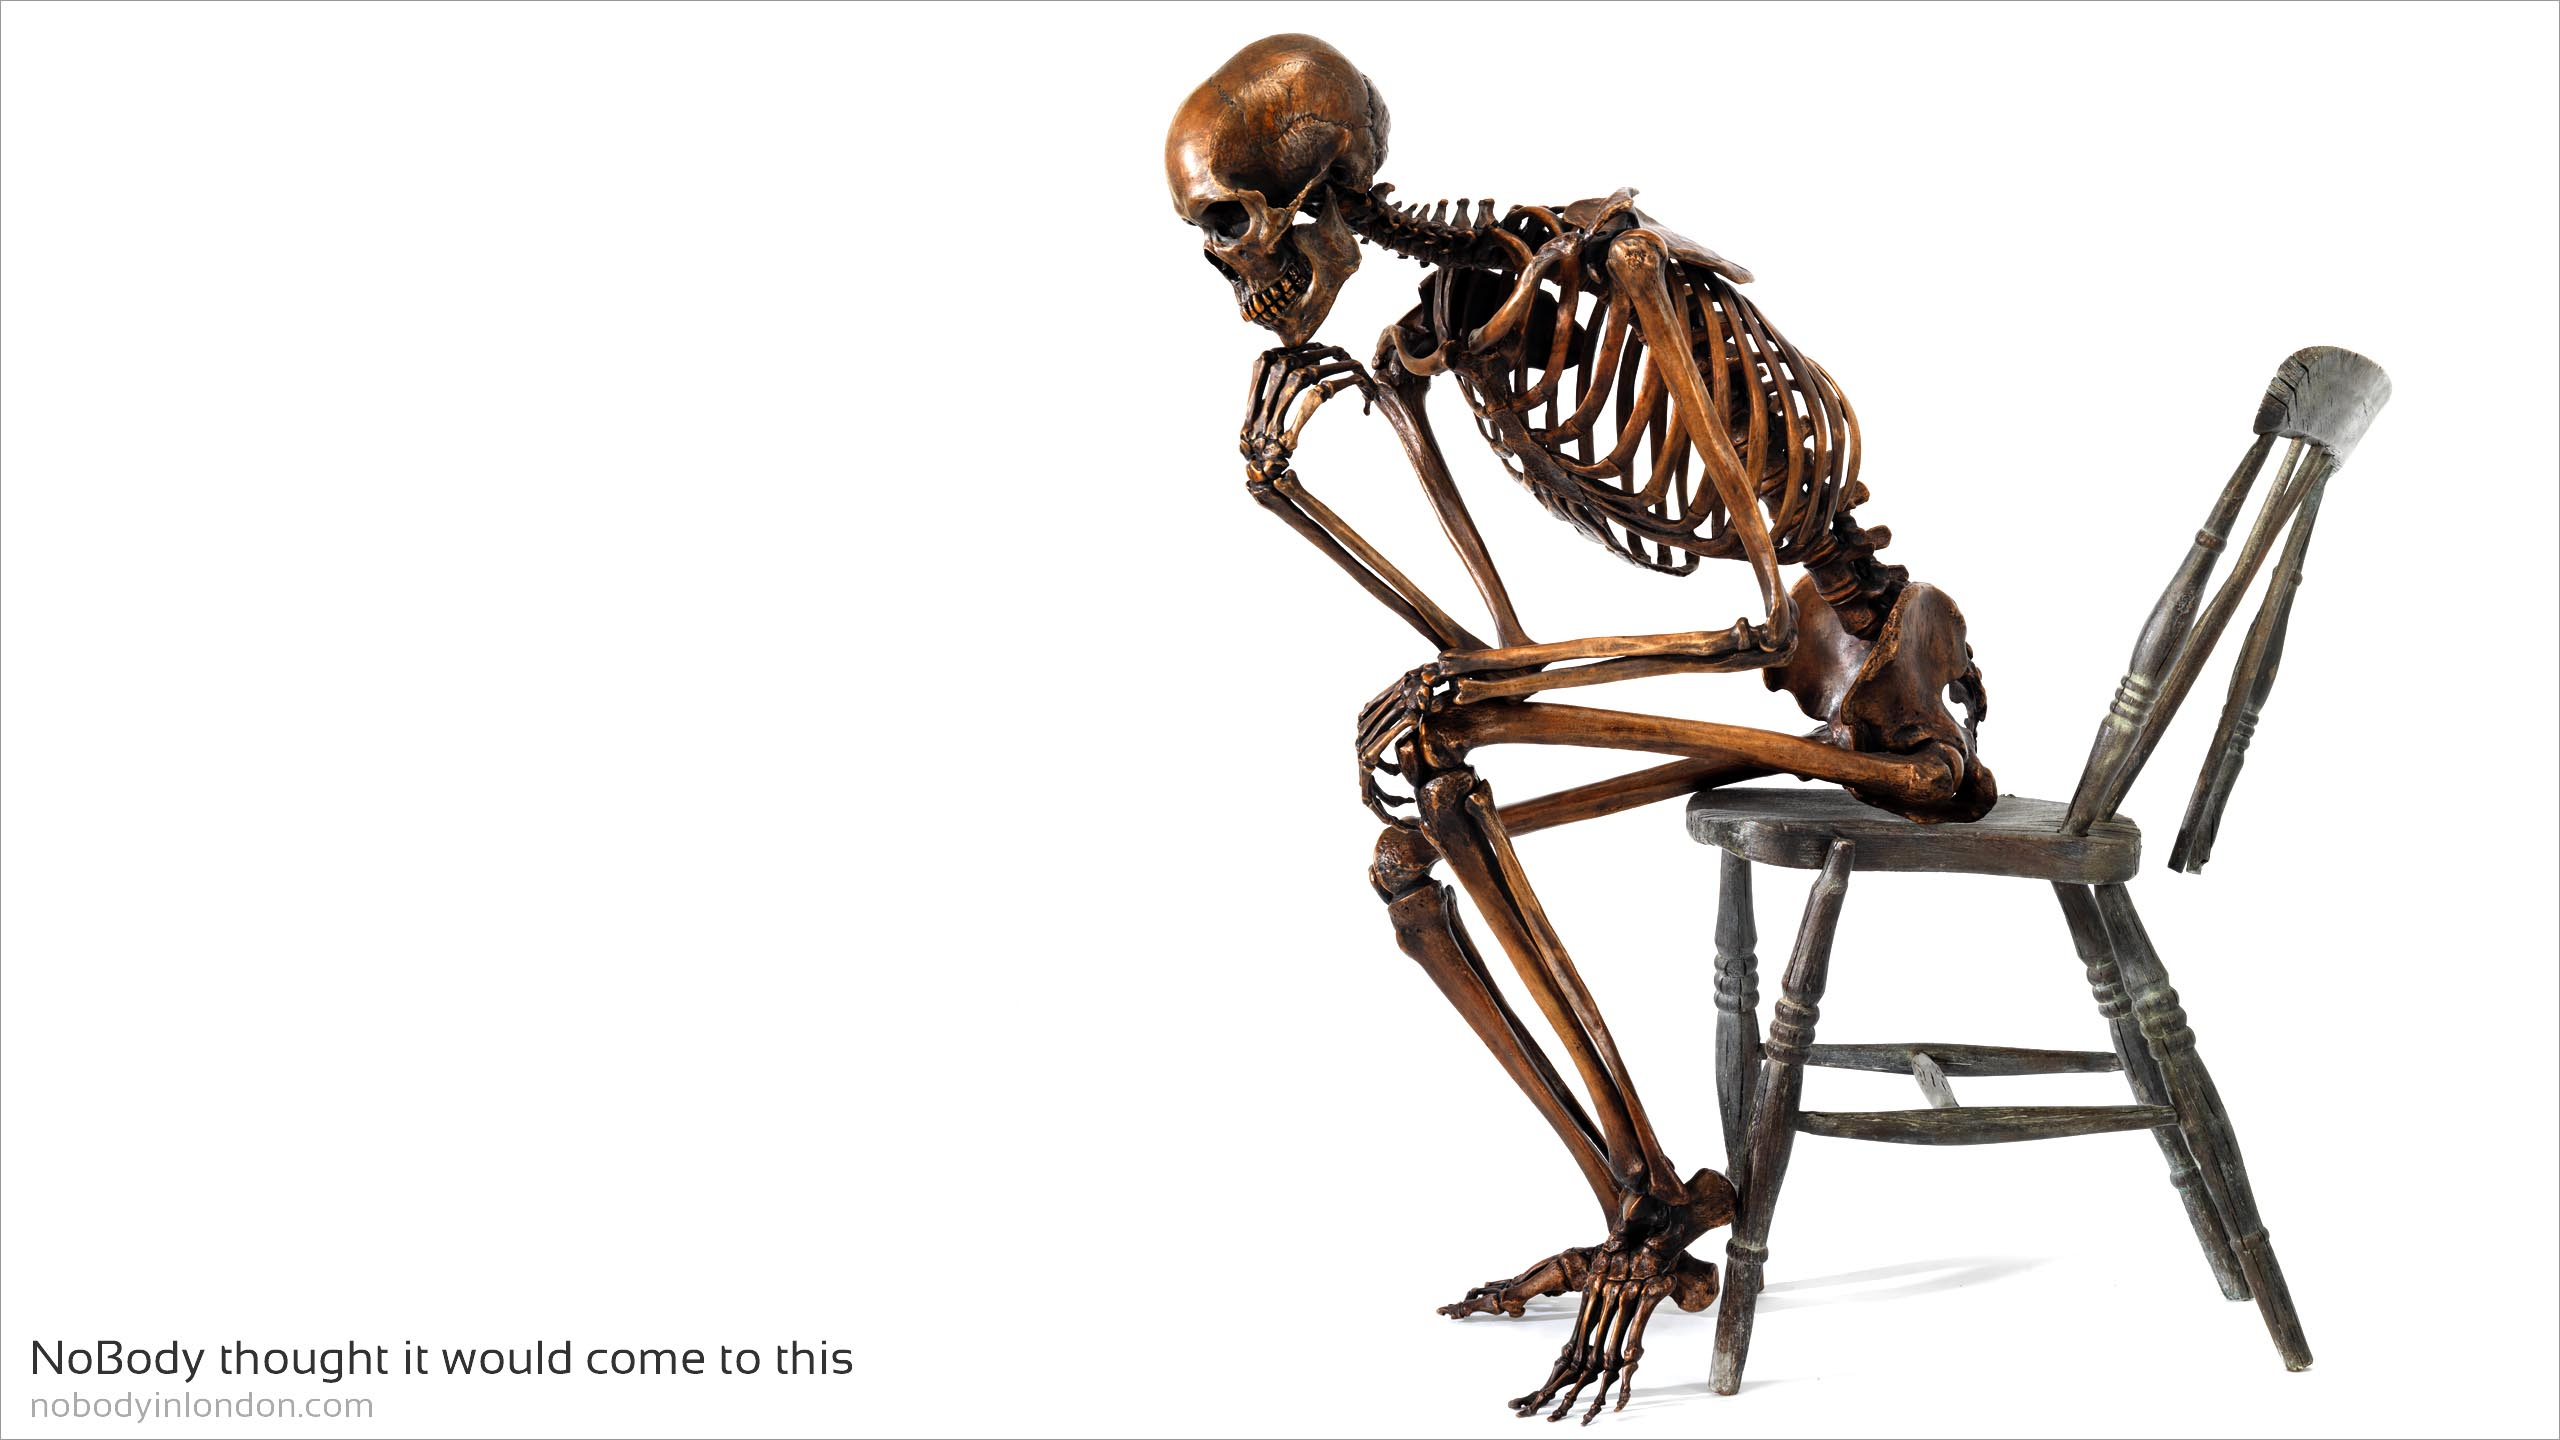 NoBody thought it would come to this life size bronze skeleton sitting on distressed bronze chair brilliant investment